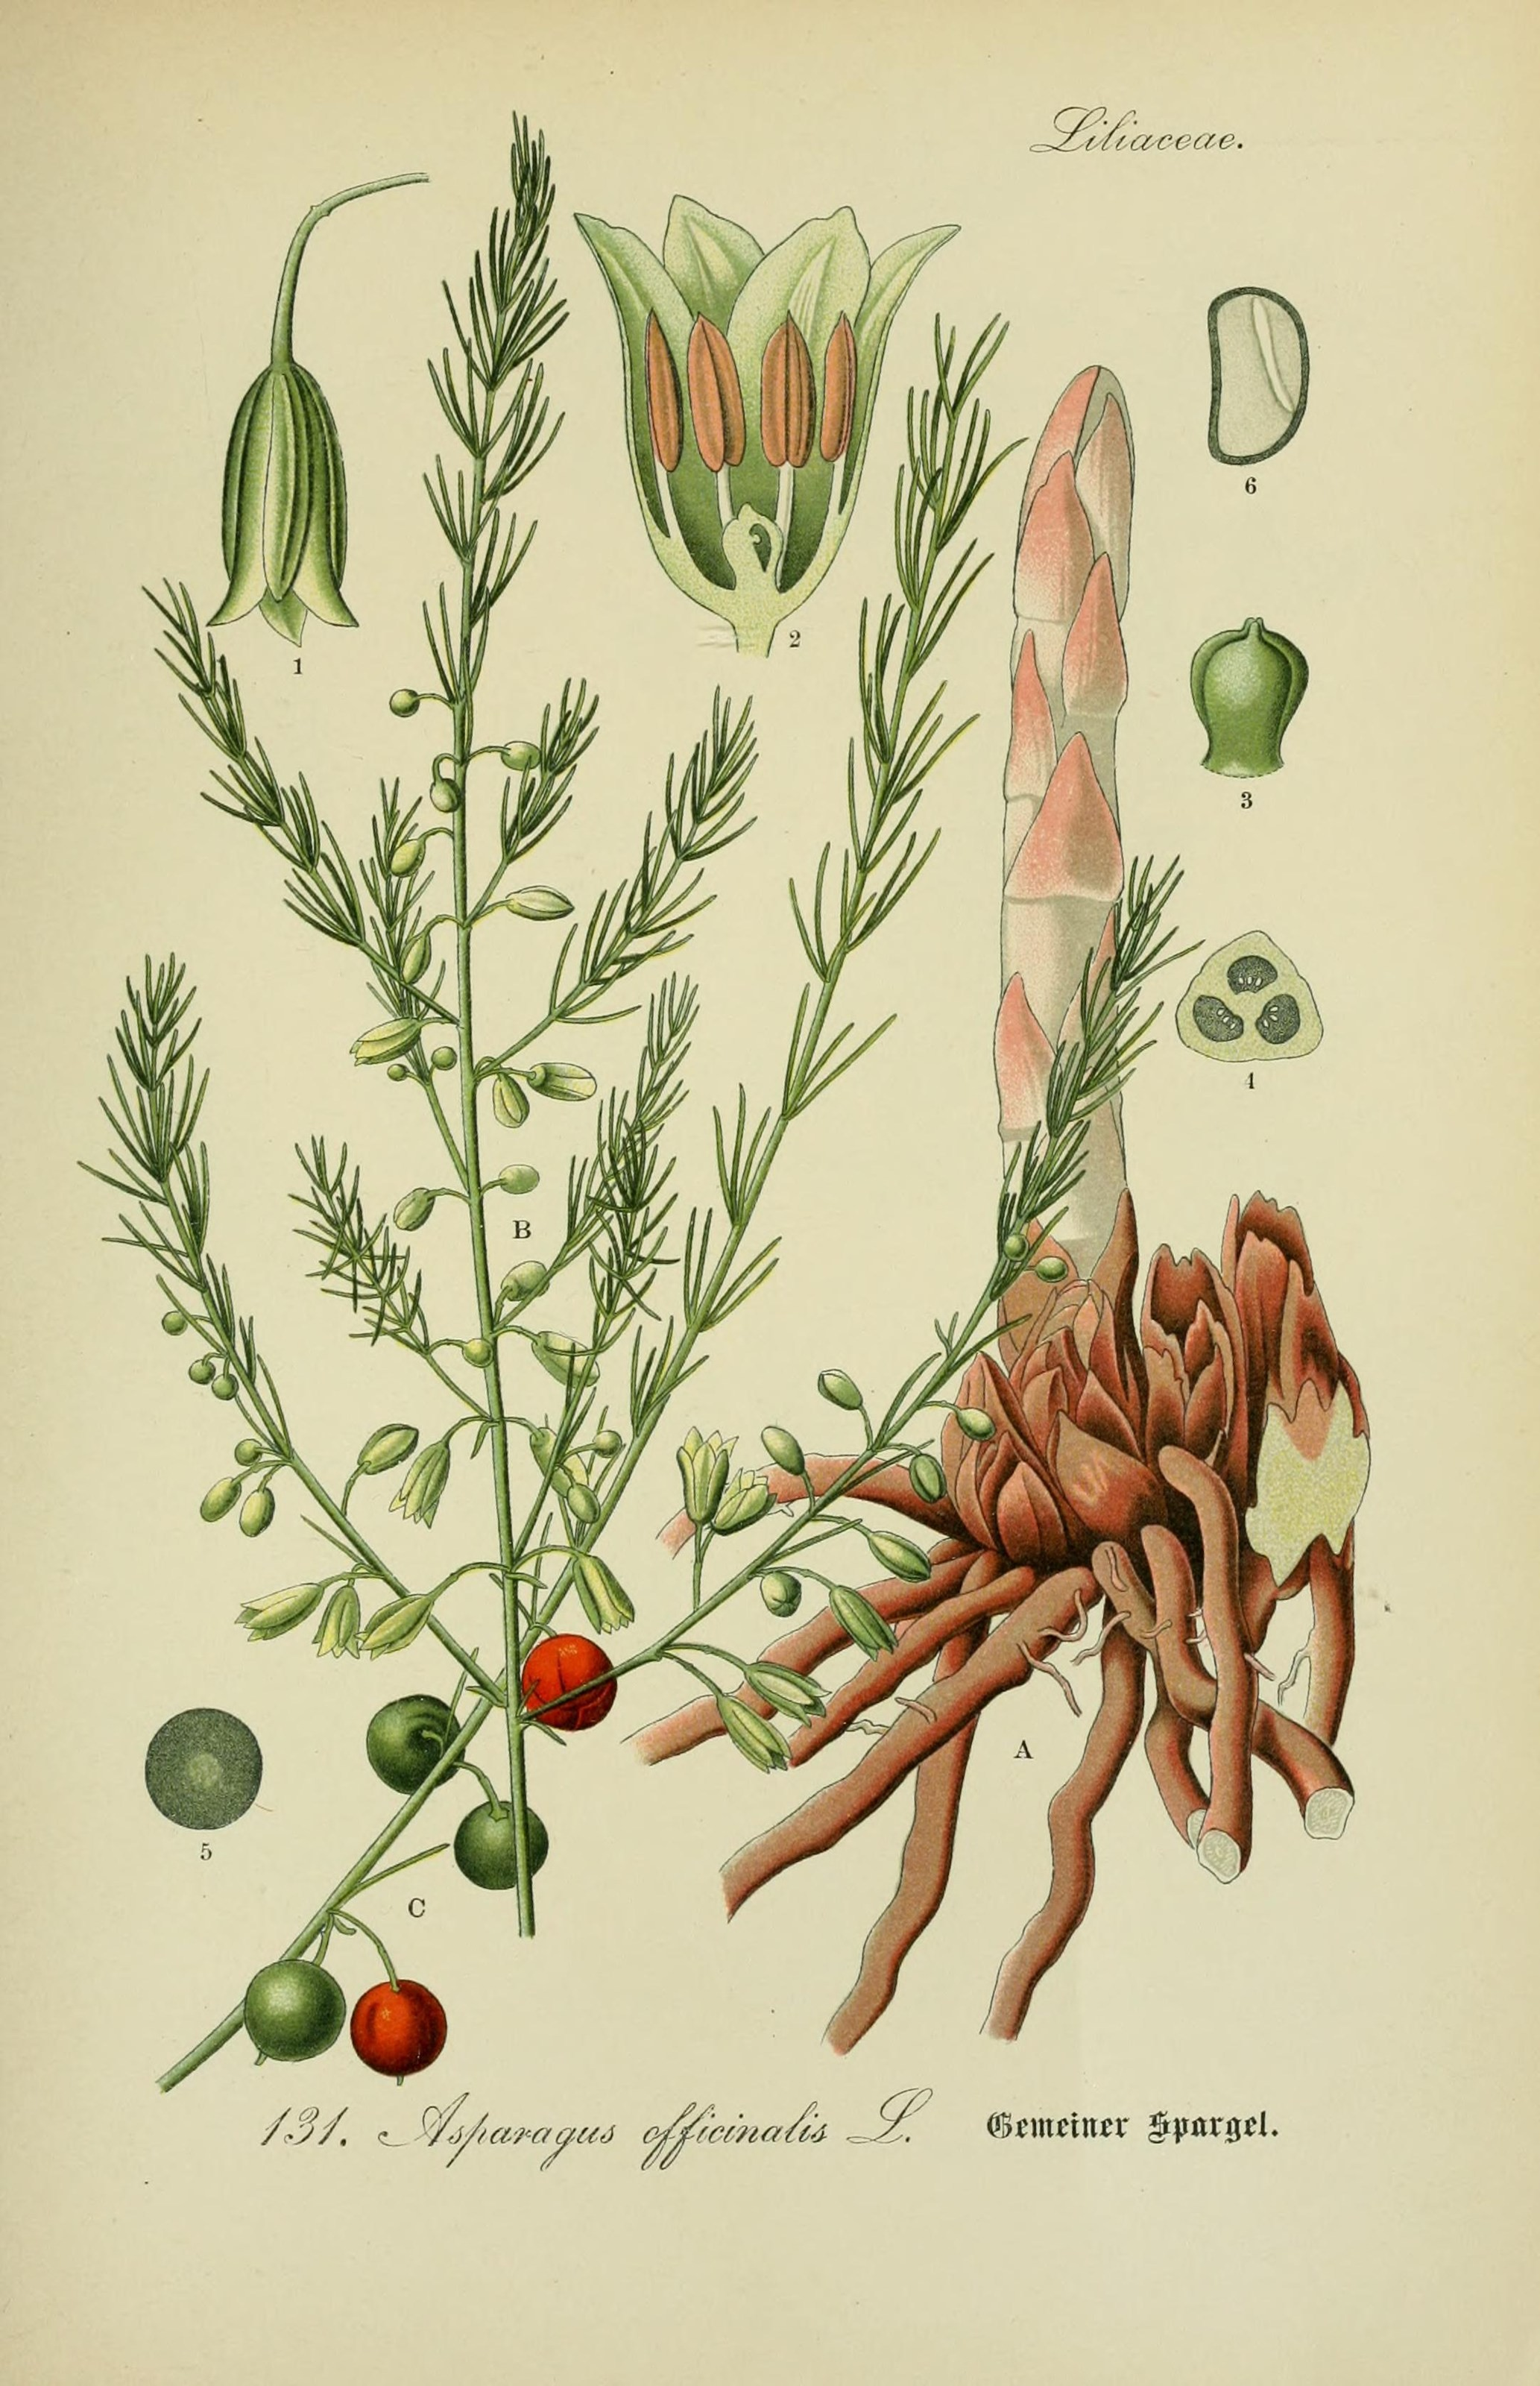 Datei:Spargel Asparagus officinalis.jpg